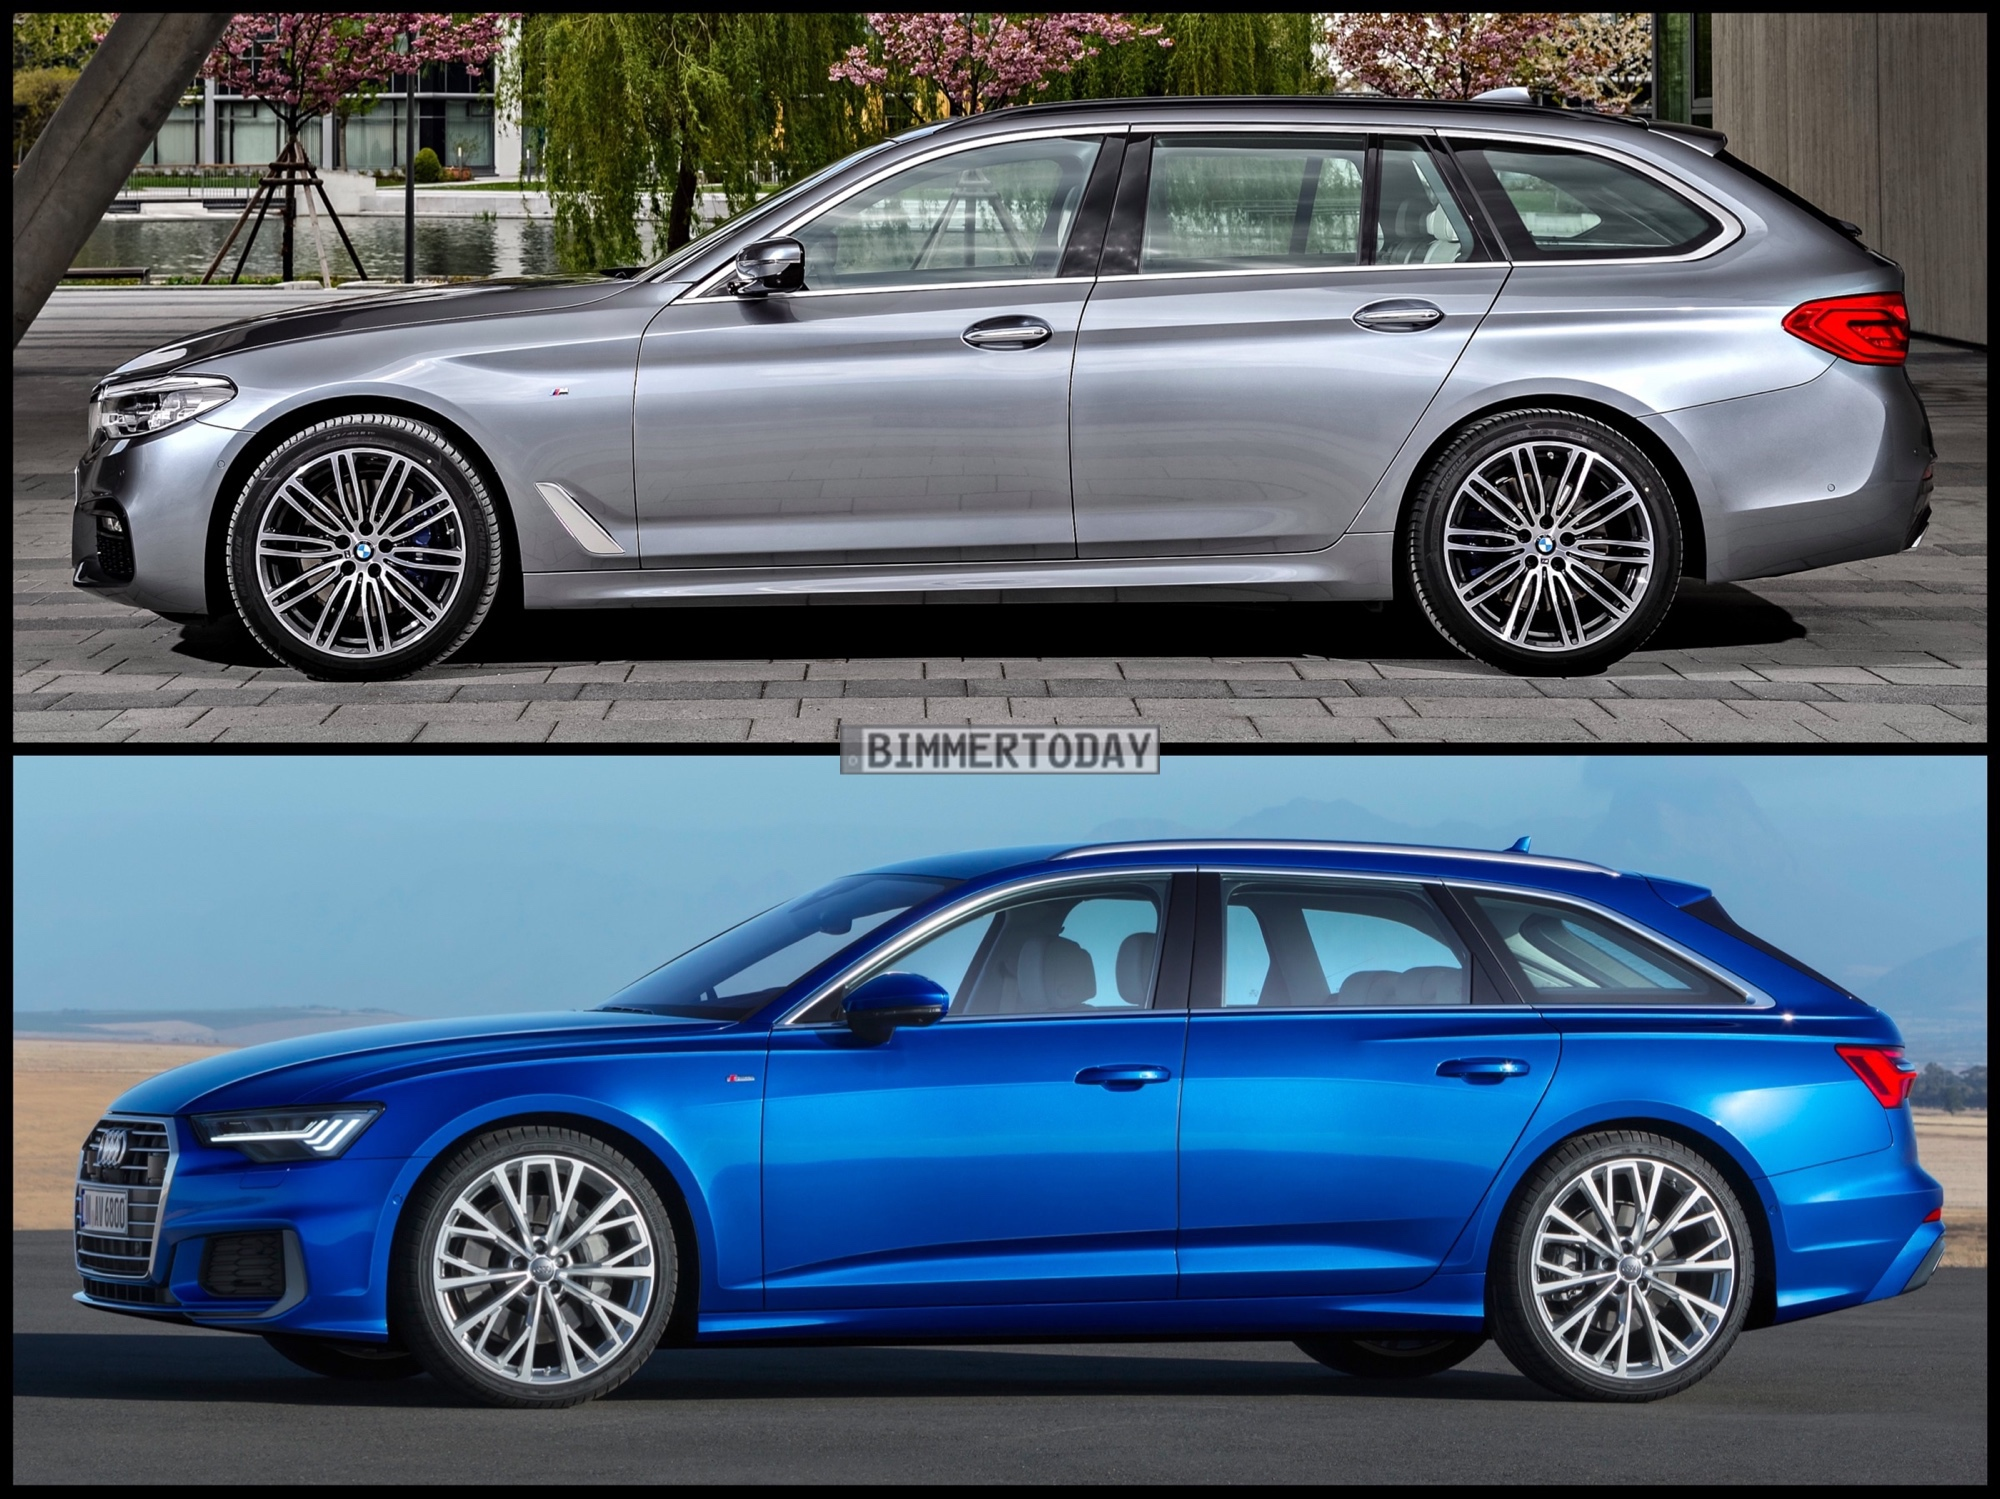 Express Auto Sales >> Photo Comparison: BMW 5 Series Touring vs Audi A6 Avant